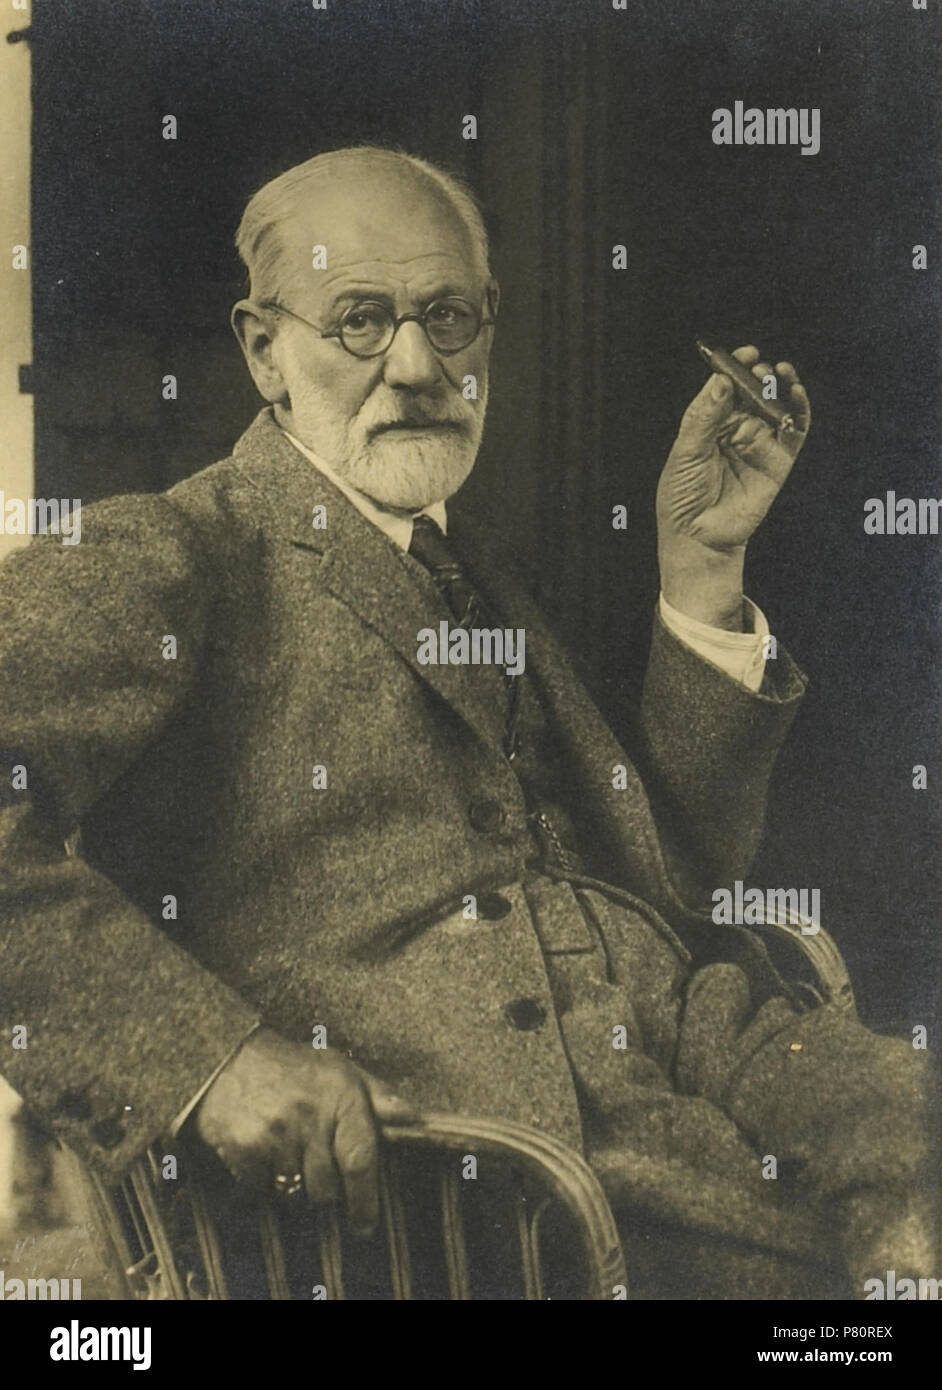 Silver gelatin print, 9 x 6½ inches, tipped to mount, photographer's blindstamp in lower left corner, being a portrait of a seated Sigmund Freud . circa 1921 346 Sigmund Freud by Max Halberstadt - Stock Image